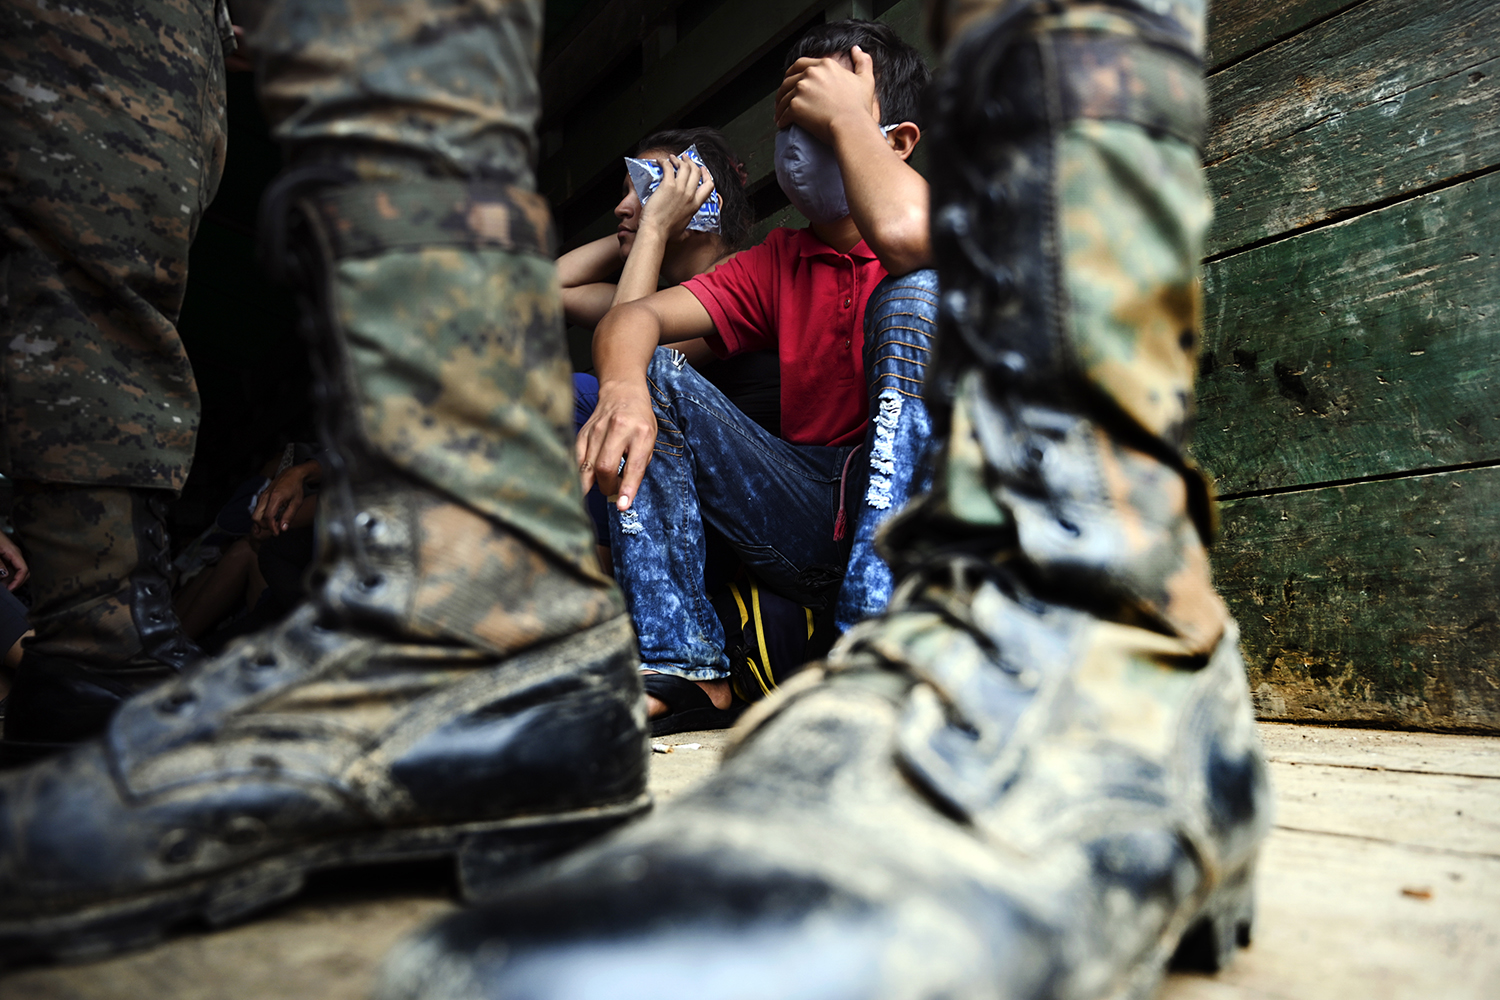 Honduran migrants who had been heading to the United States sit in an army truck in Entre Rios, Guatemala, on Oct. 2 after agreeing to return to their country. JOHAN ORDONEZ/AFP via Getty Images